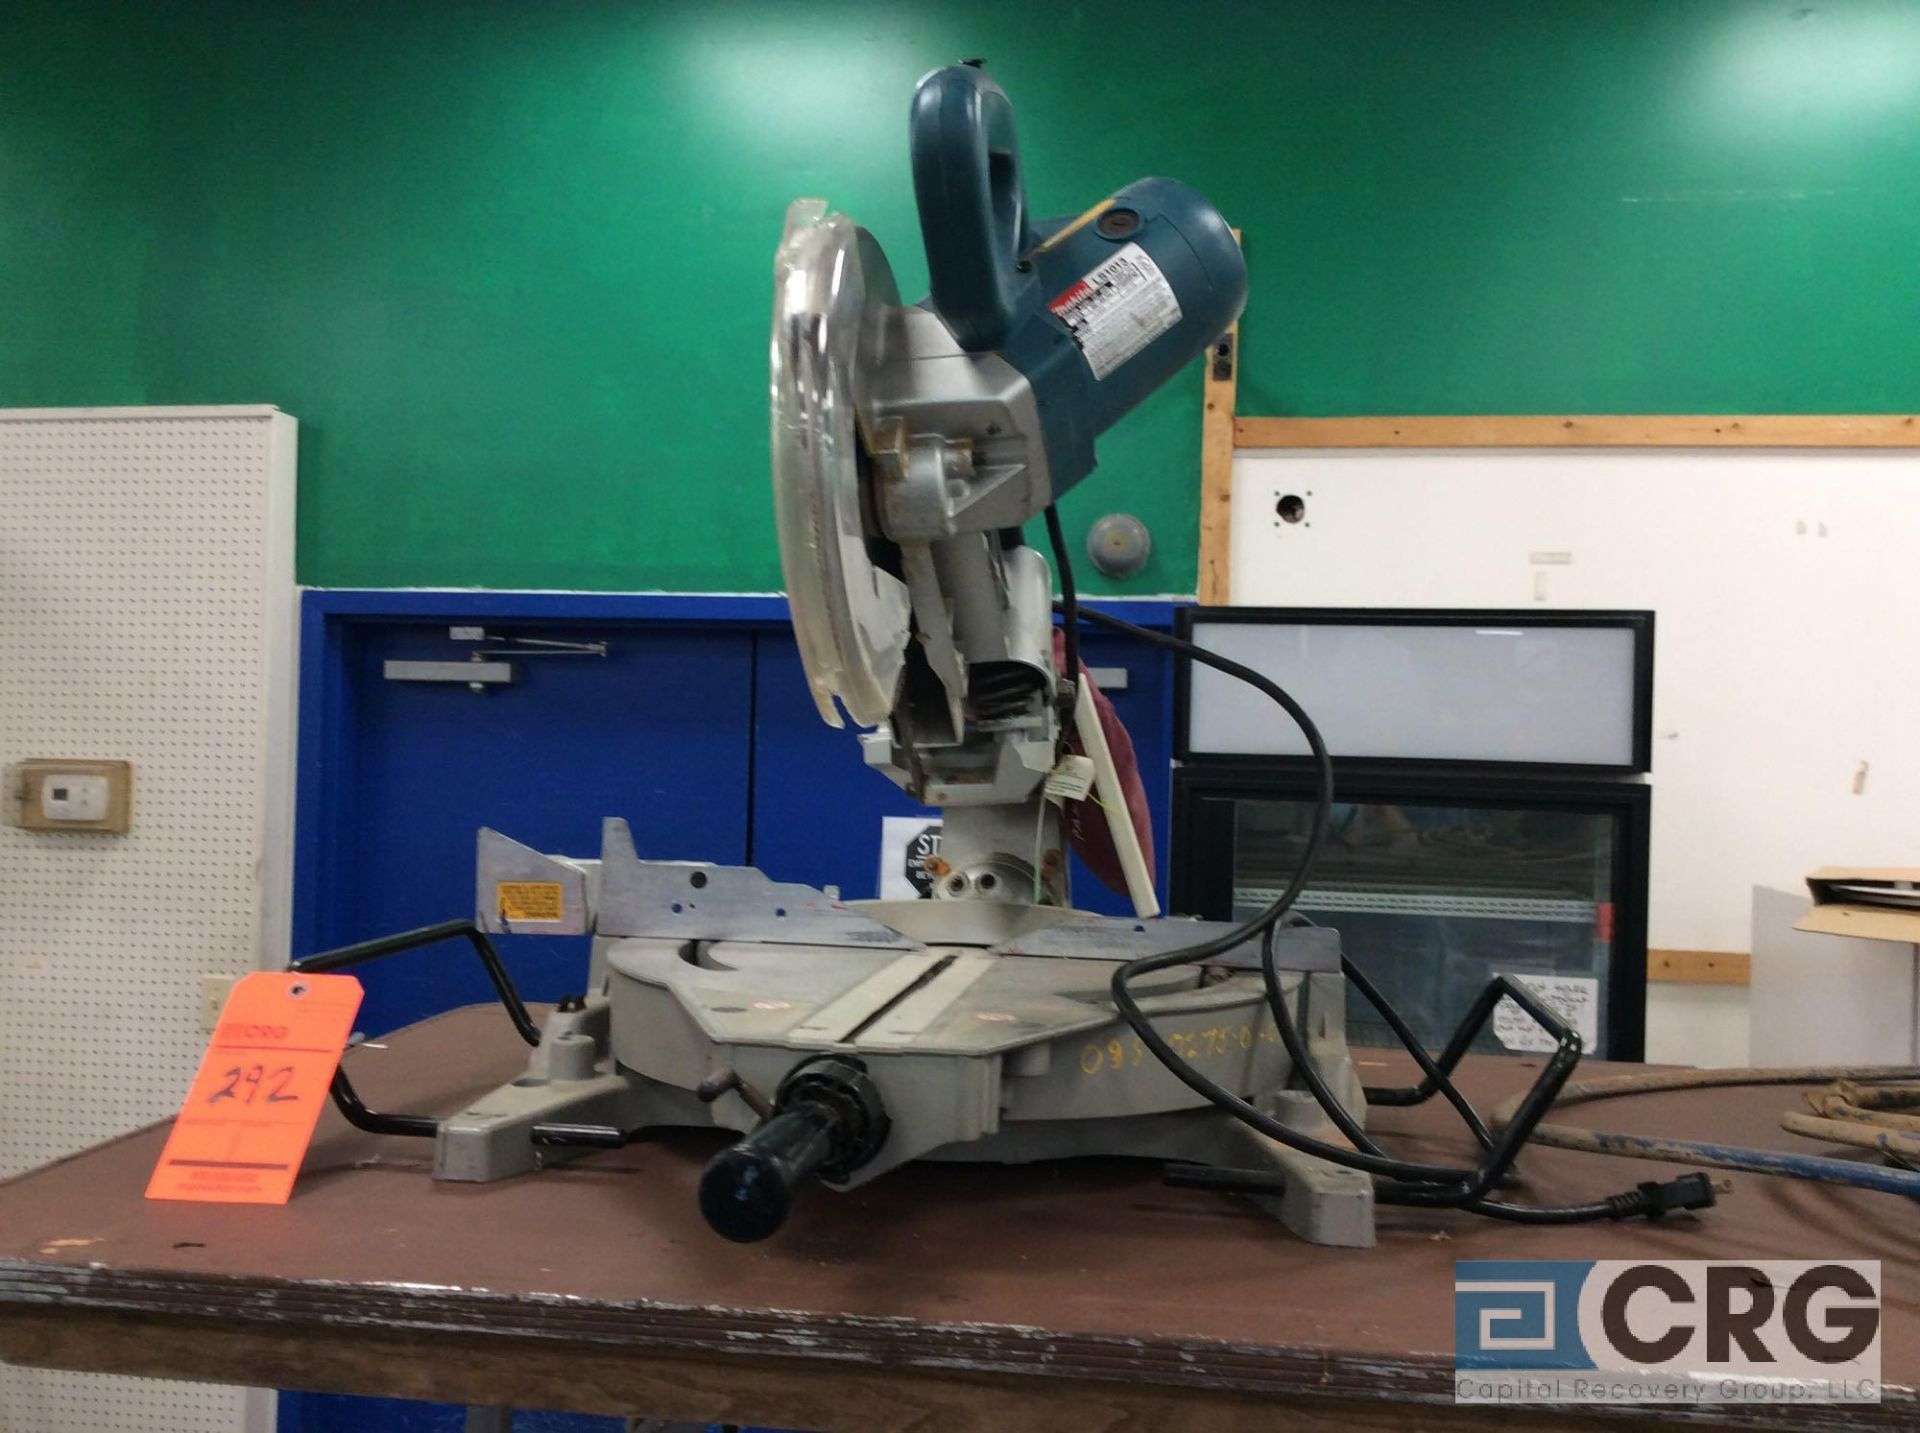 Lot 292 - Makita LS1013 10 inch mitre saw, 1 phase